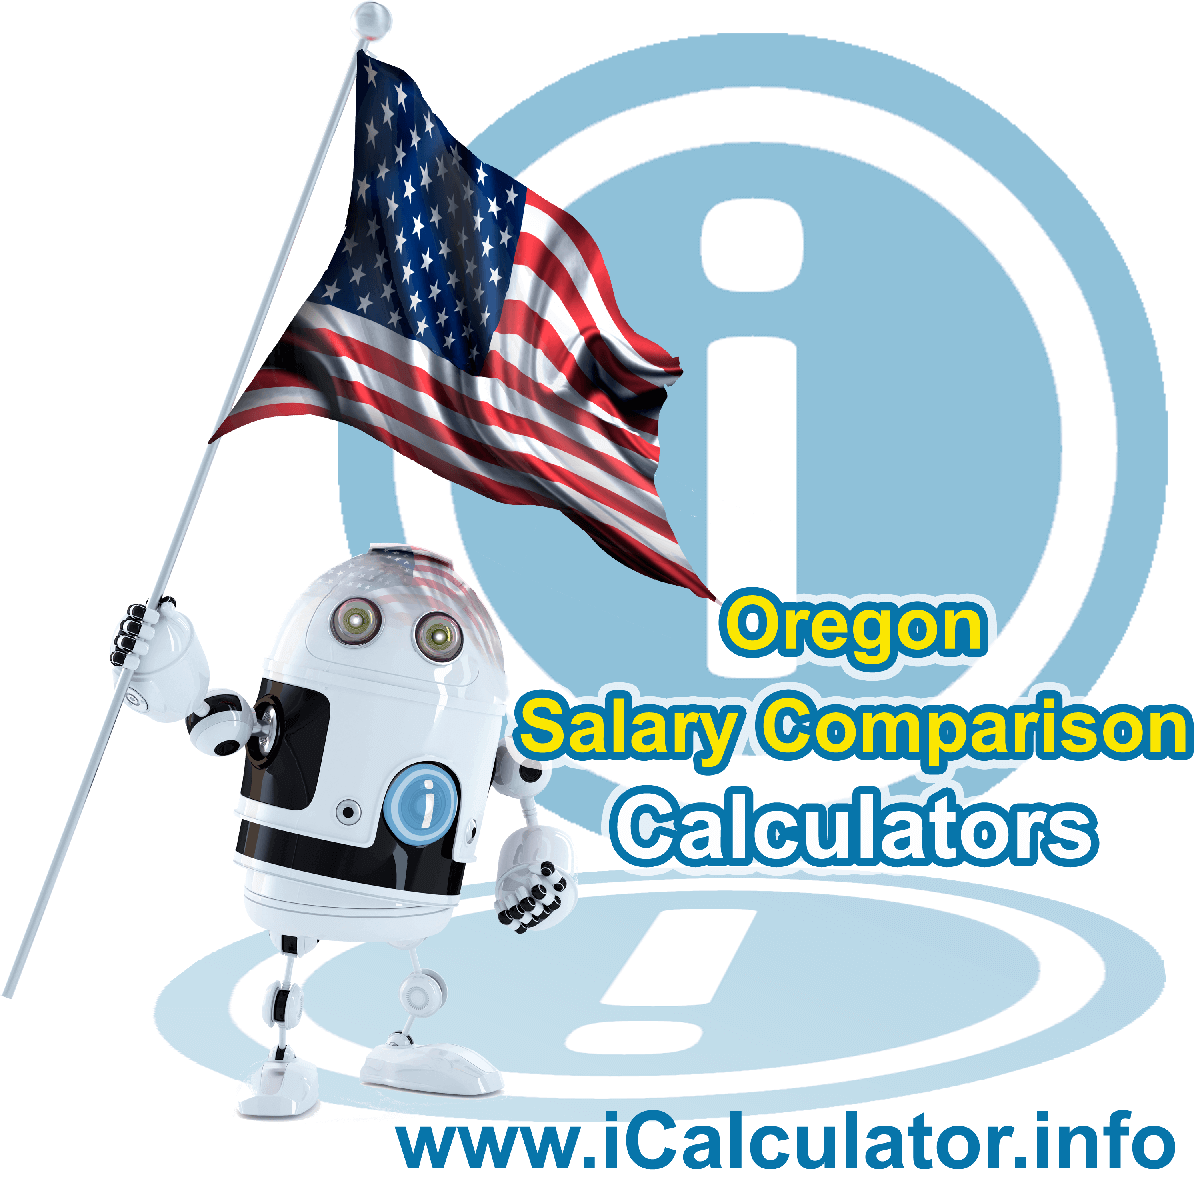 Oregon Salary Comparison Calculator 2020 | iCalculator | The Oregon Salary Comparison Calculator allows you to quickly calculate and compare upto 6 salaries in Oregon or between other states for the 2020 tax year and historical tax years. Its an excellent tool for jobseekers, pay raise comparison and comparison of salaries between different US States